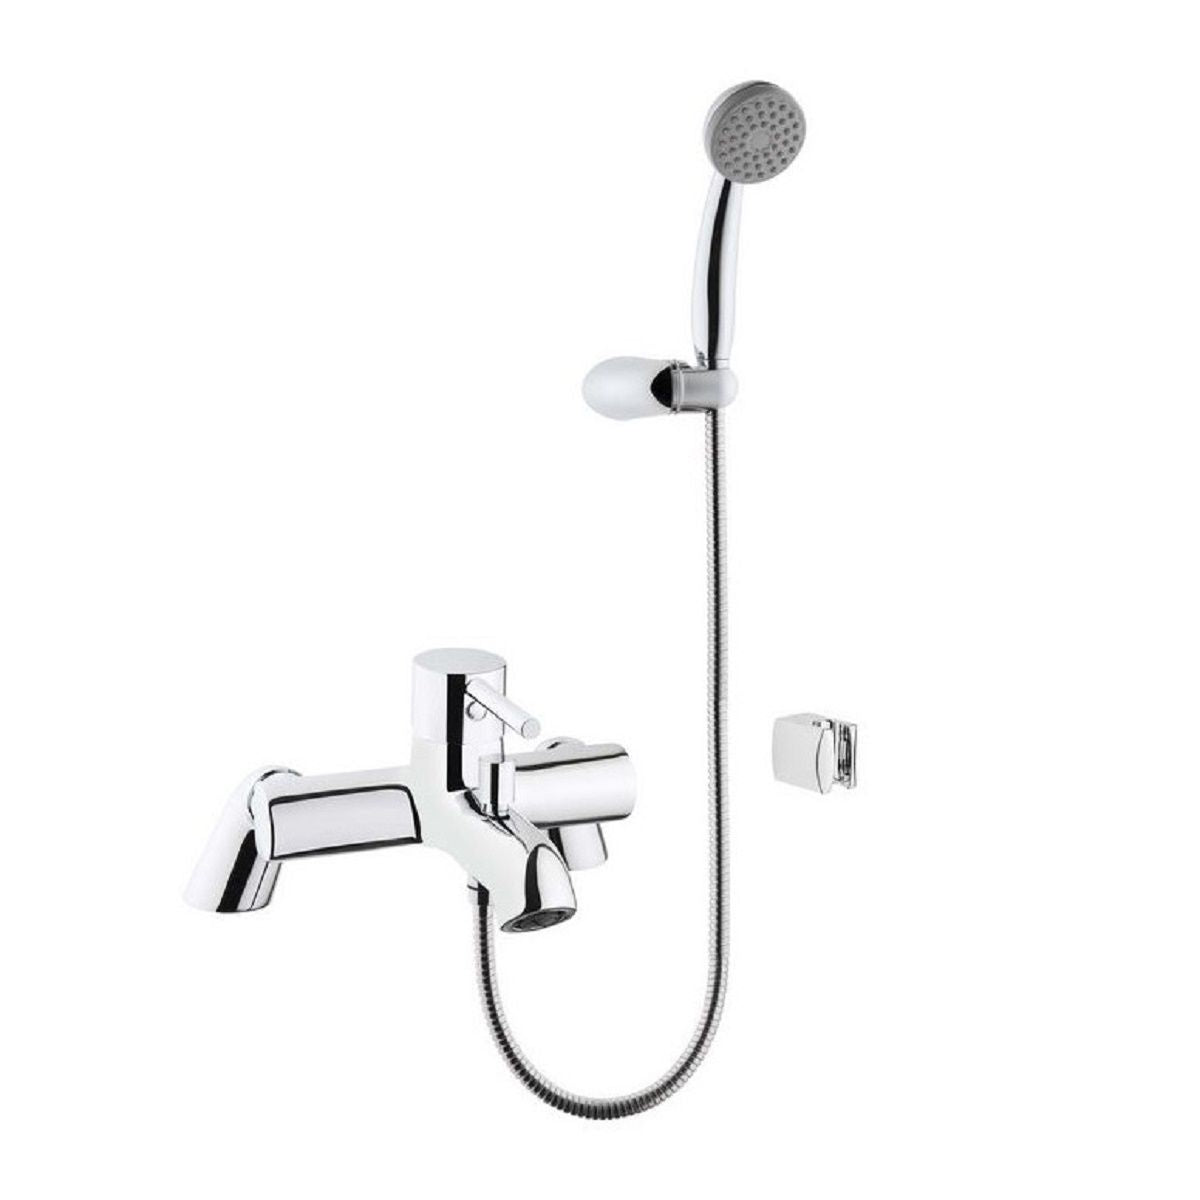 Minimax Bath Shower Mixer - Blue Sky Bathrooms Ltd